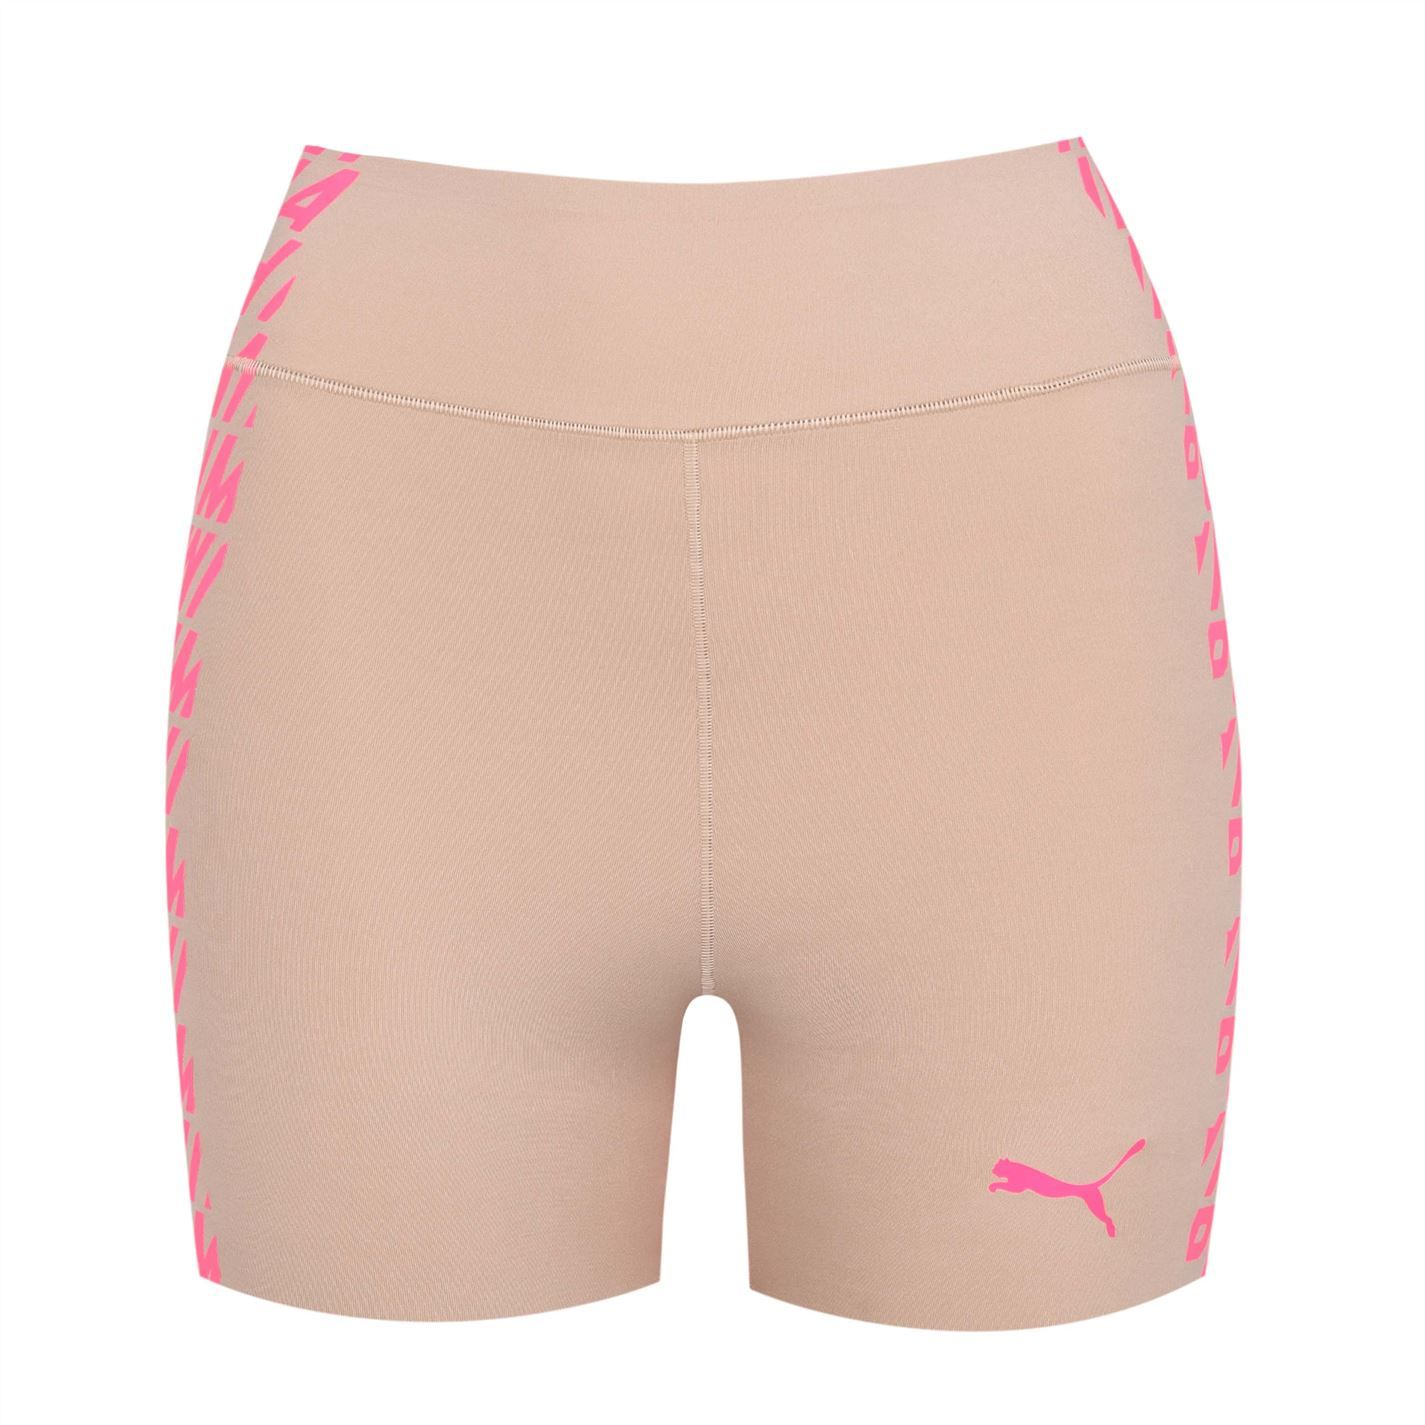 Puma Womens Shaping Long Boxers Shorts Bottoms Workout Fitnes Training Sport